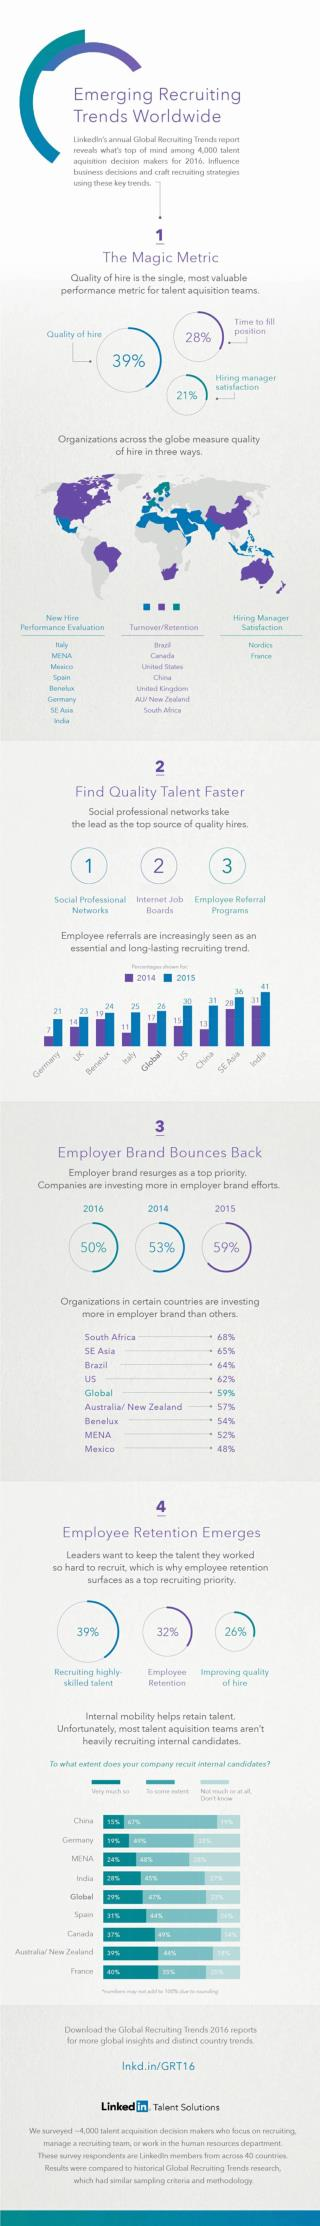 Global Recruiting Trends of 2016